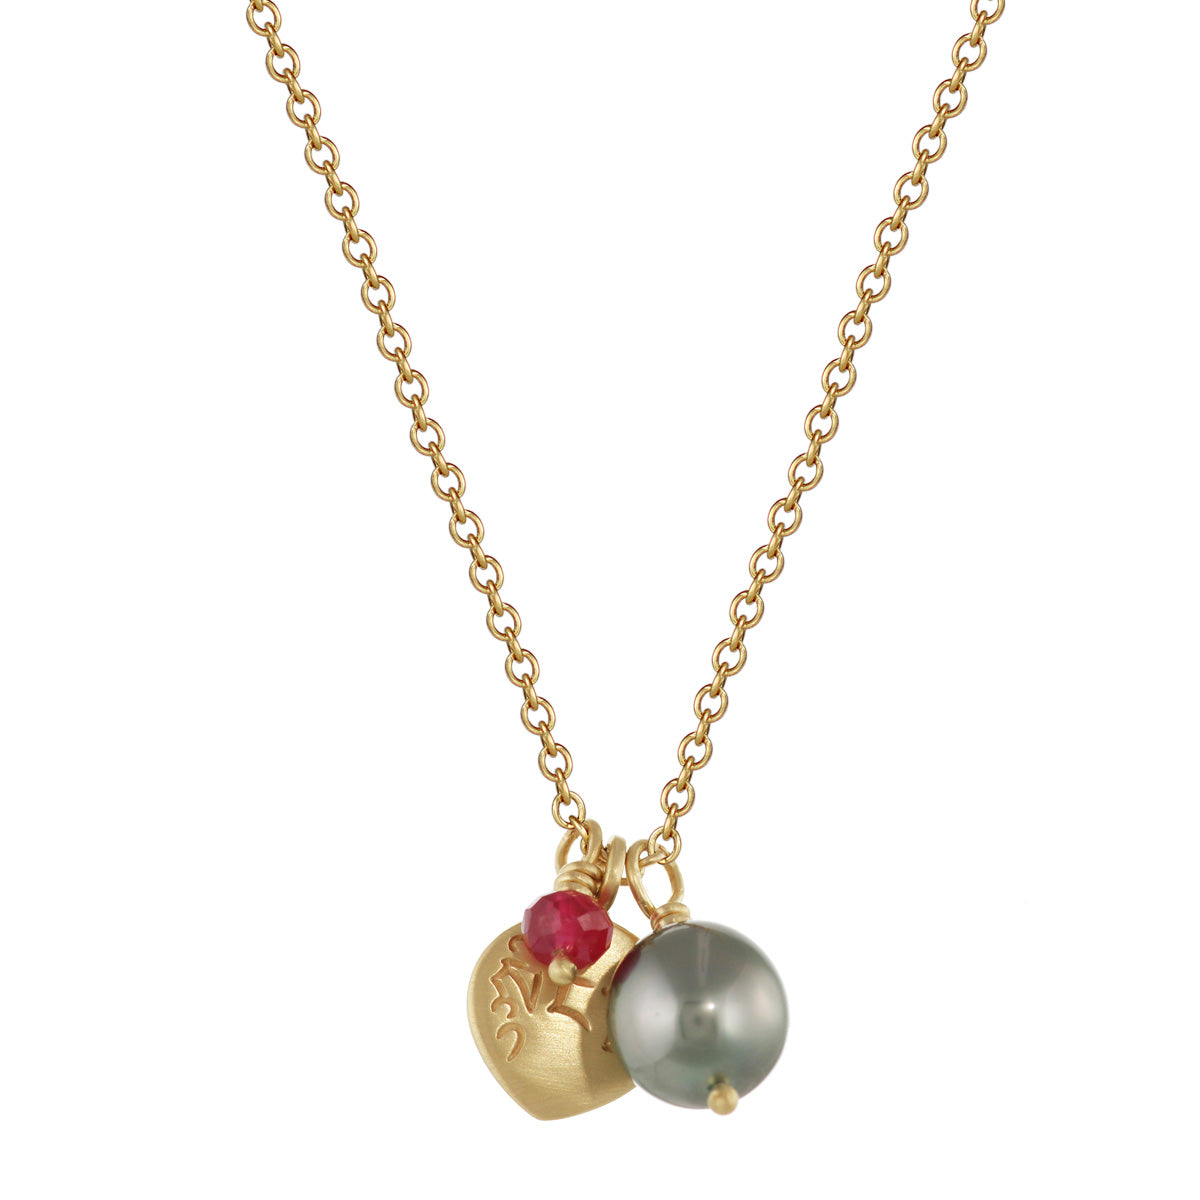 18K Gold Compassion Trinket Pendant with Tahitian Pearl and Ruby